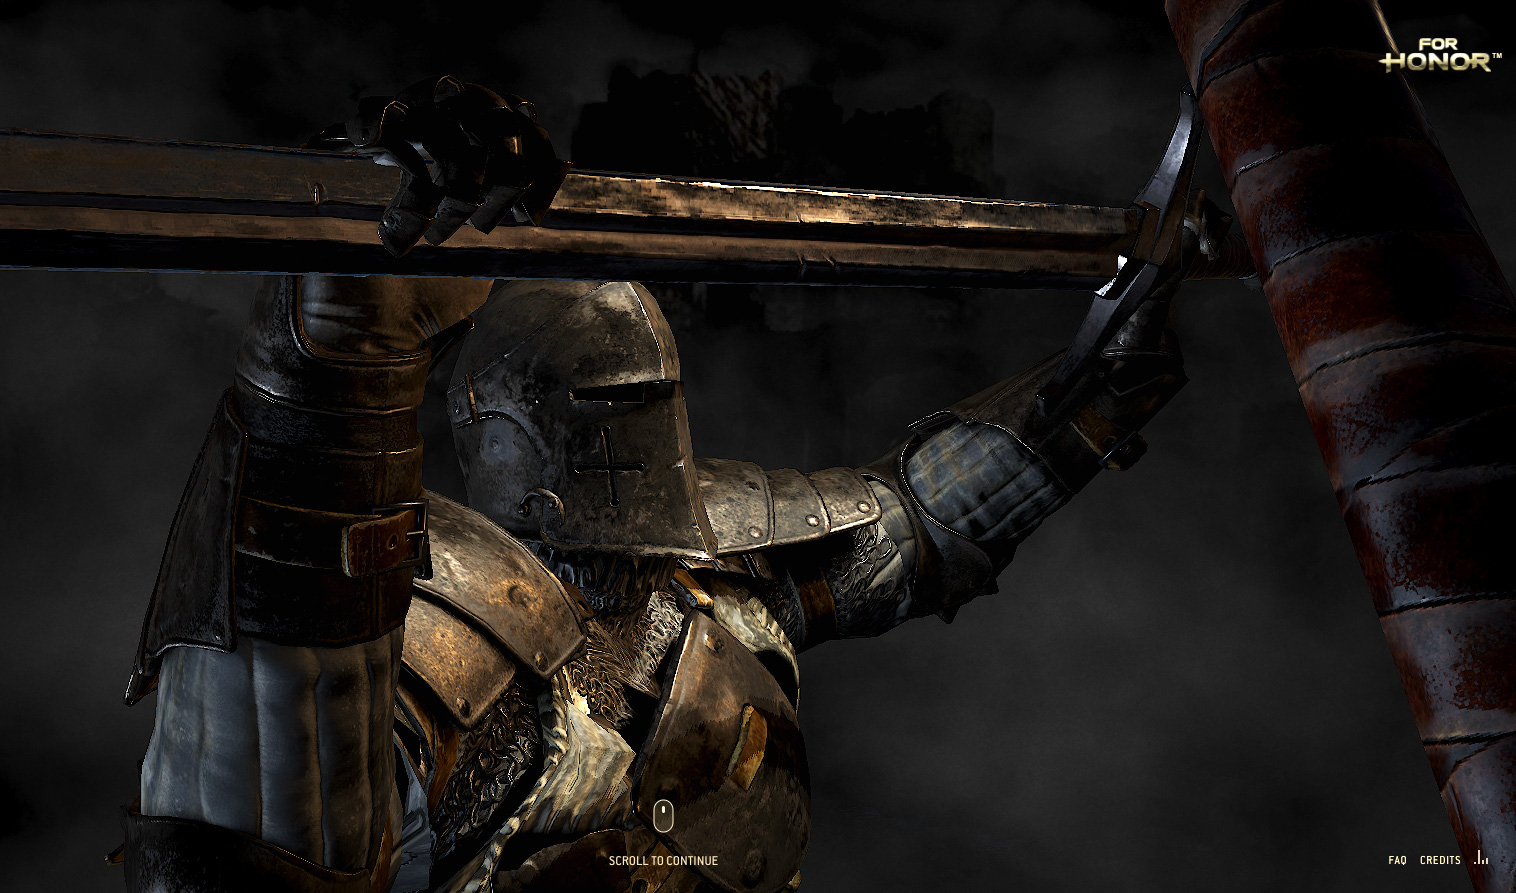 For Honor - Scars Wins Site of the Month February